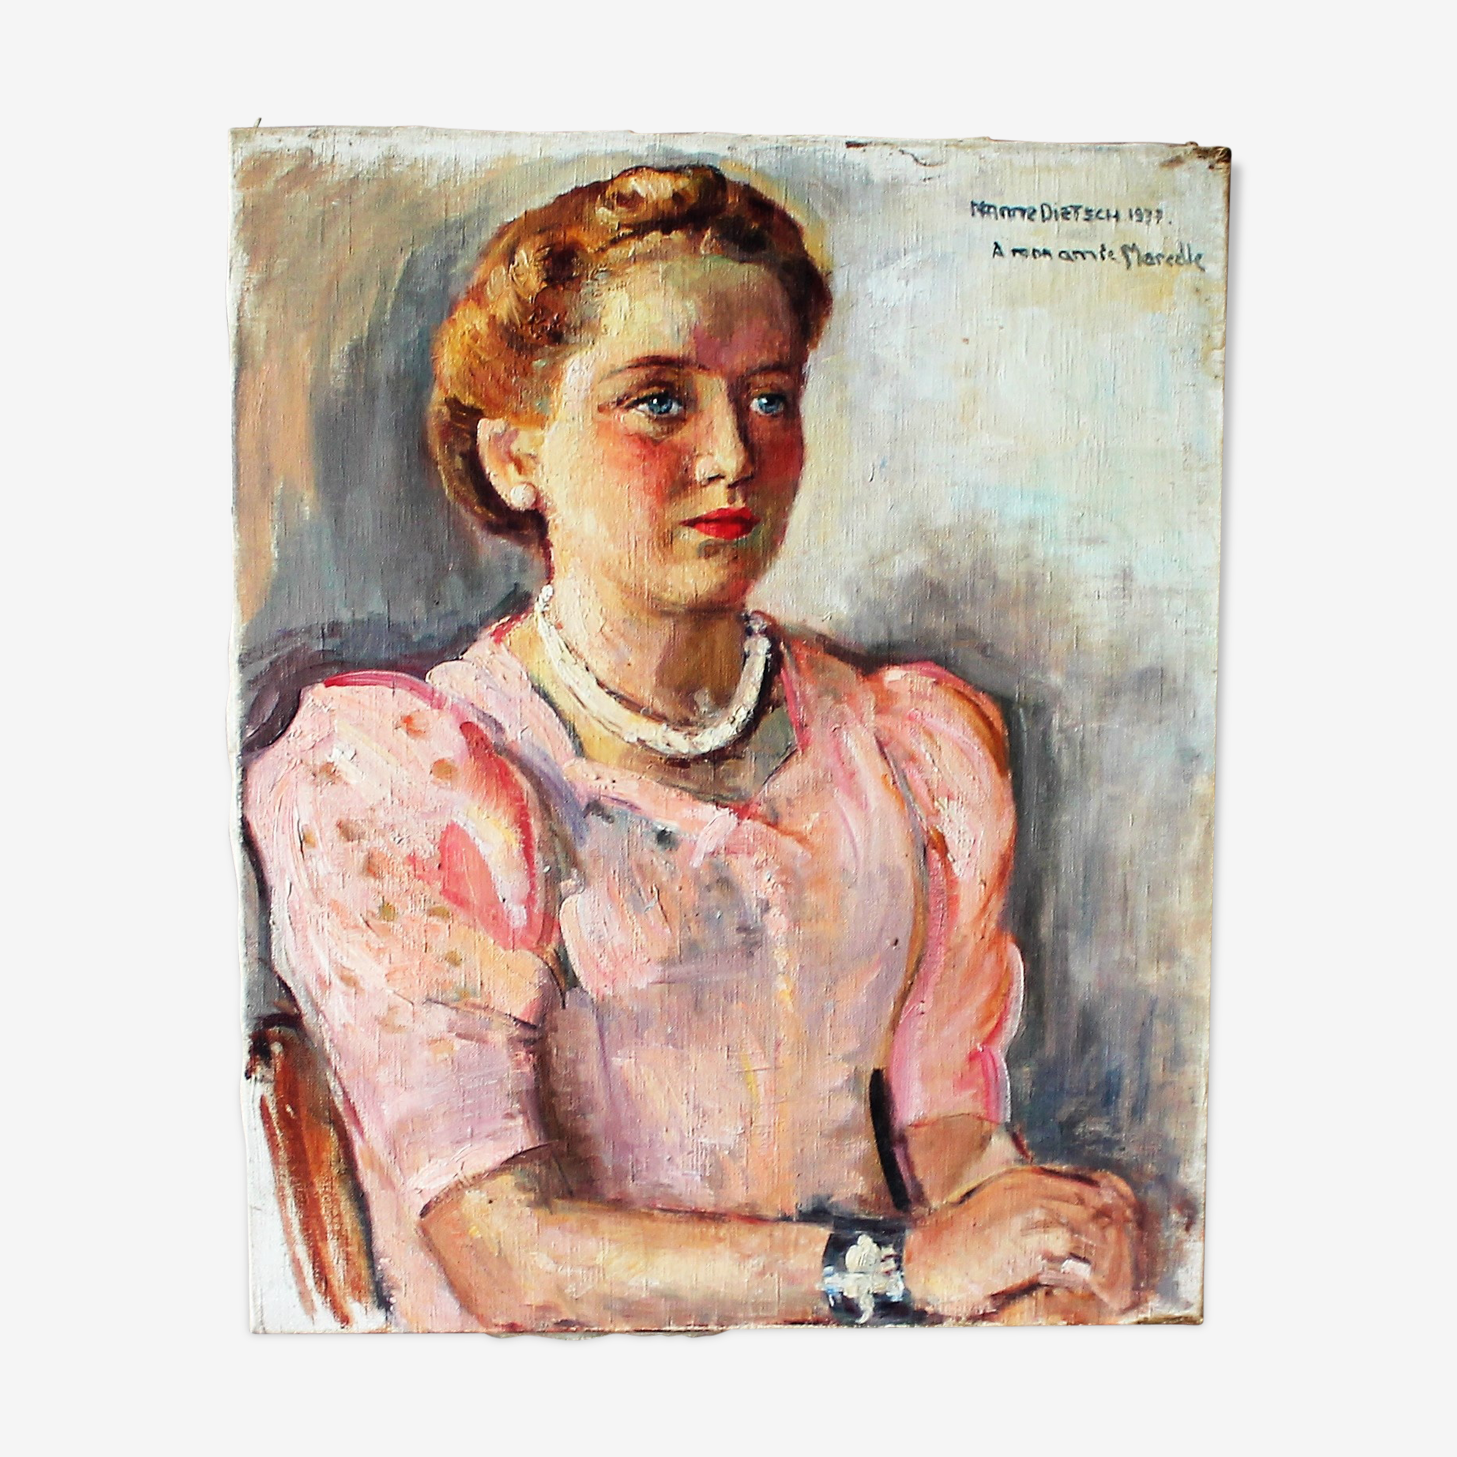 Portrait on canvas of 1937